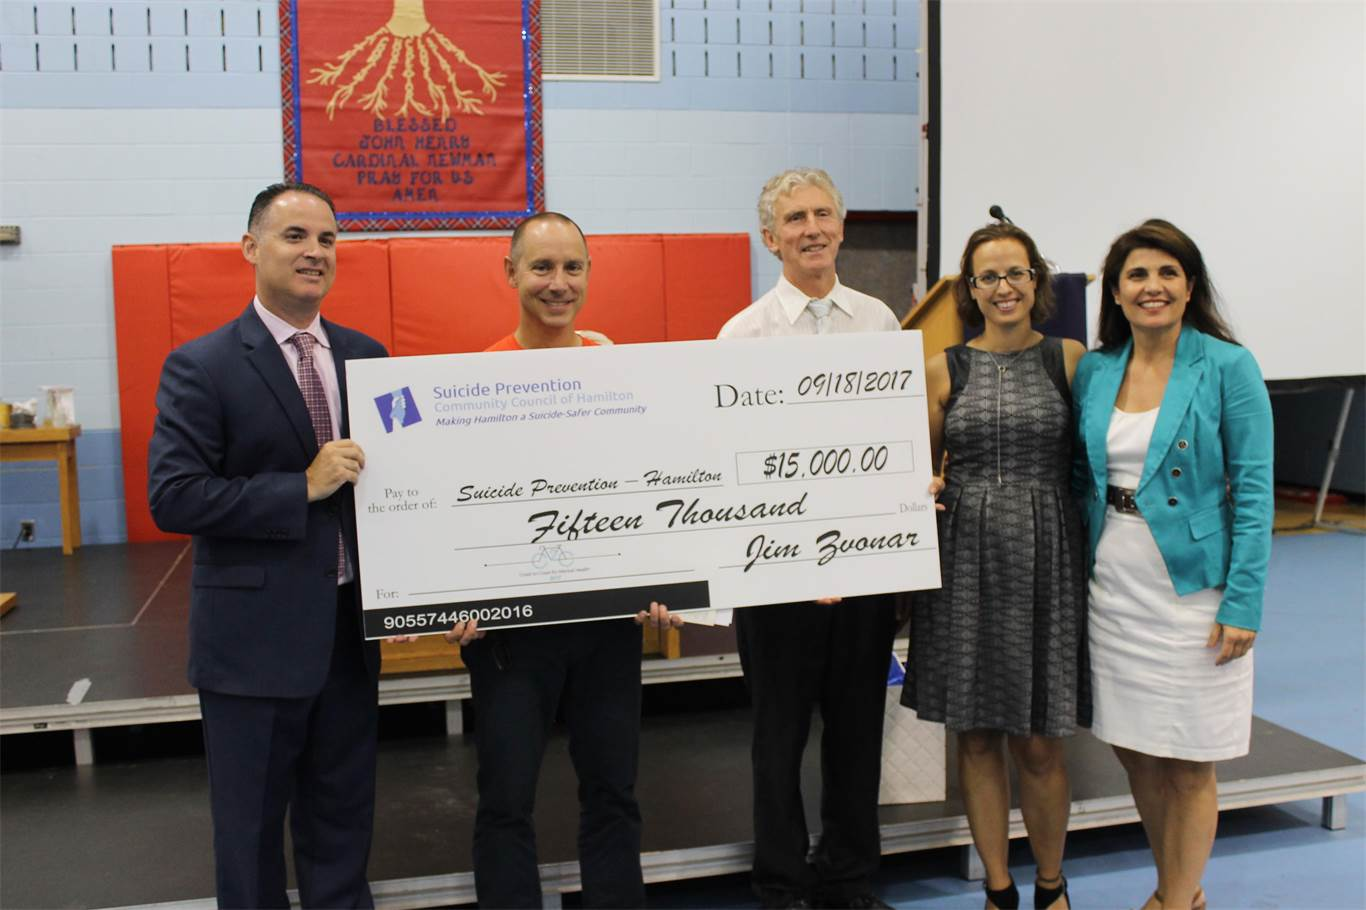 From left: Cardinal Newman Principal Dean DiFrancesco; Jim Zvonar; Sid Stacey, Chair of the SPCCH; Carla LaBella, Member of the SPCCH Board of Directors, Marisa Mariella, Cathedral Teacher and Member of the SPCCH Board of Directors.